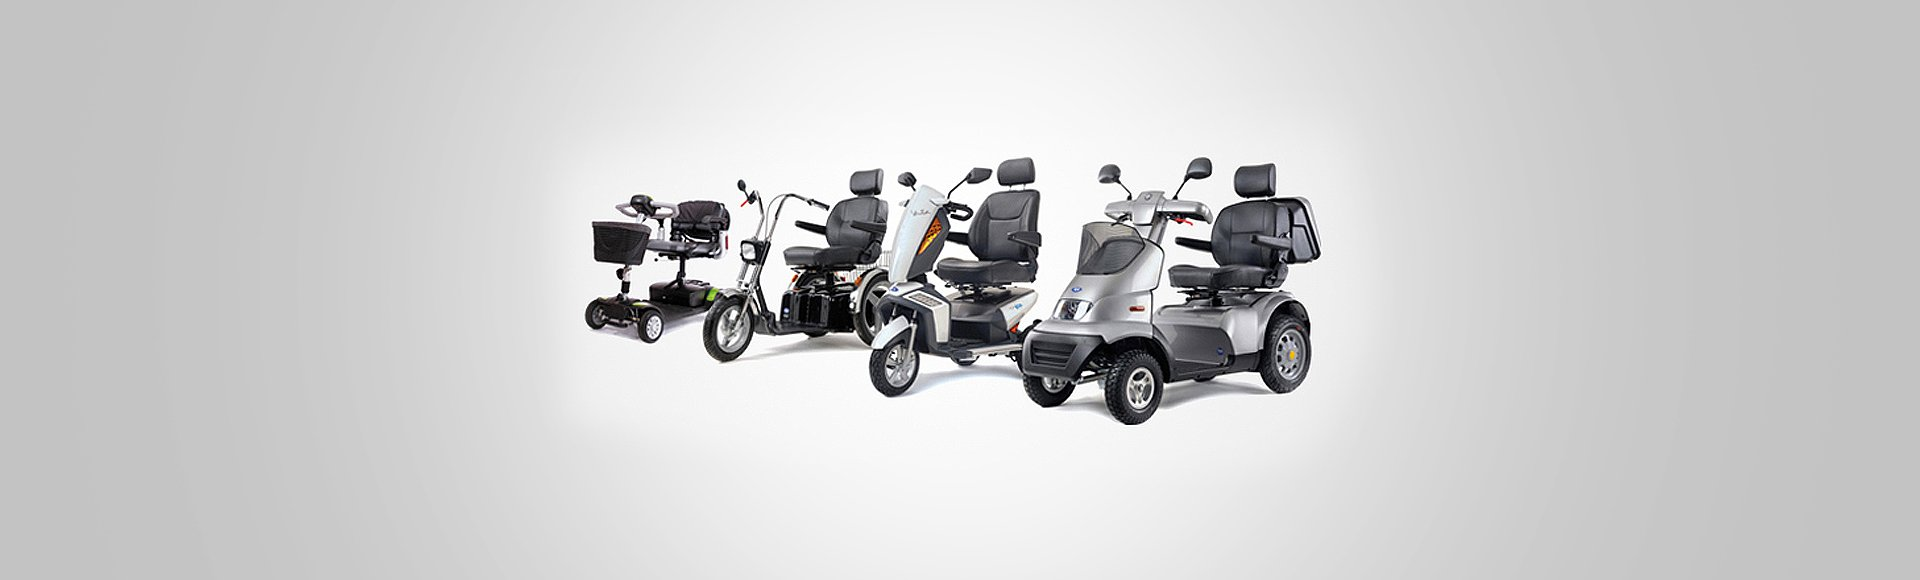 Mobility scooter rentals